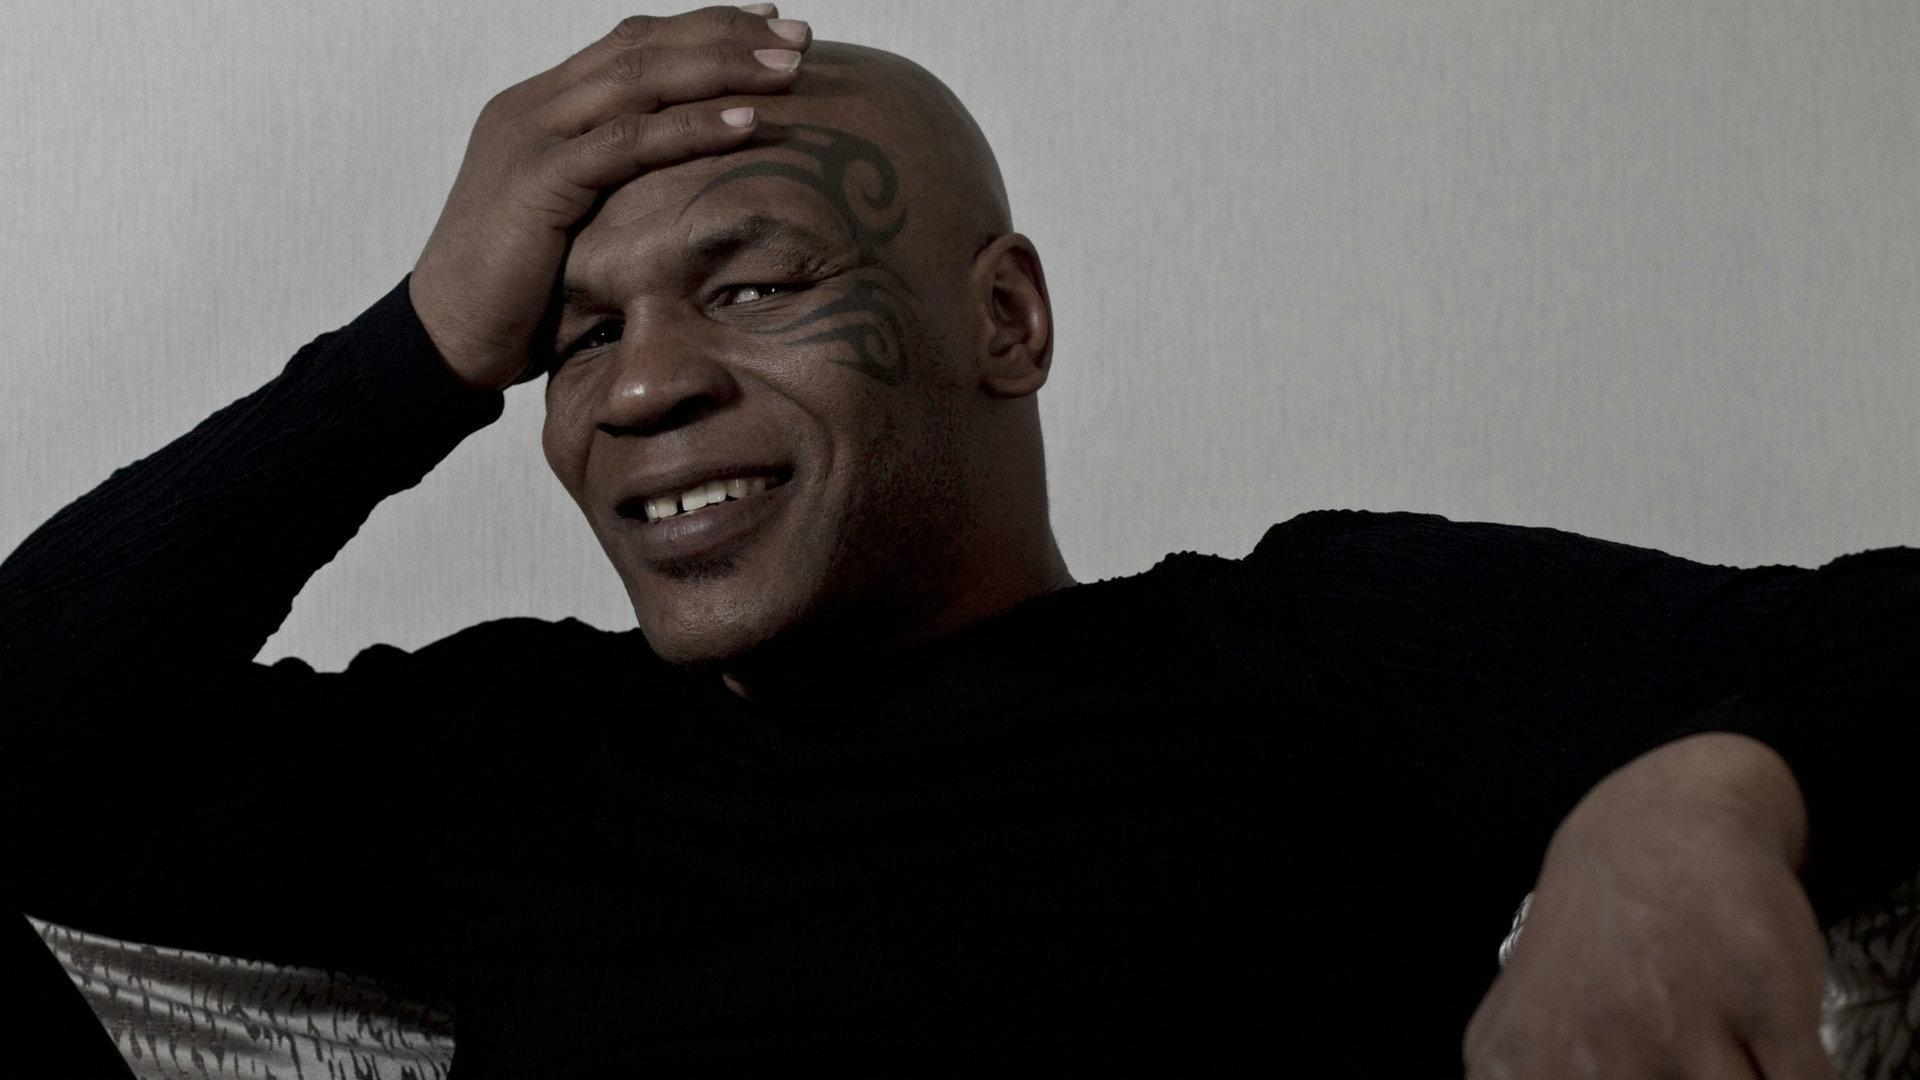 Mike Tyson Tattoo Wallpapers ID683545